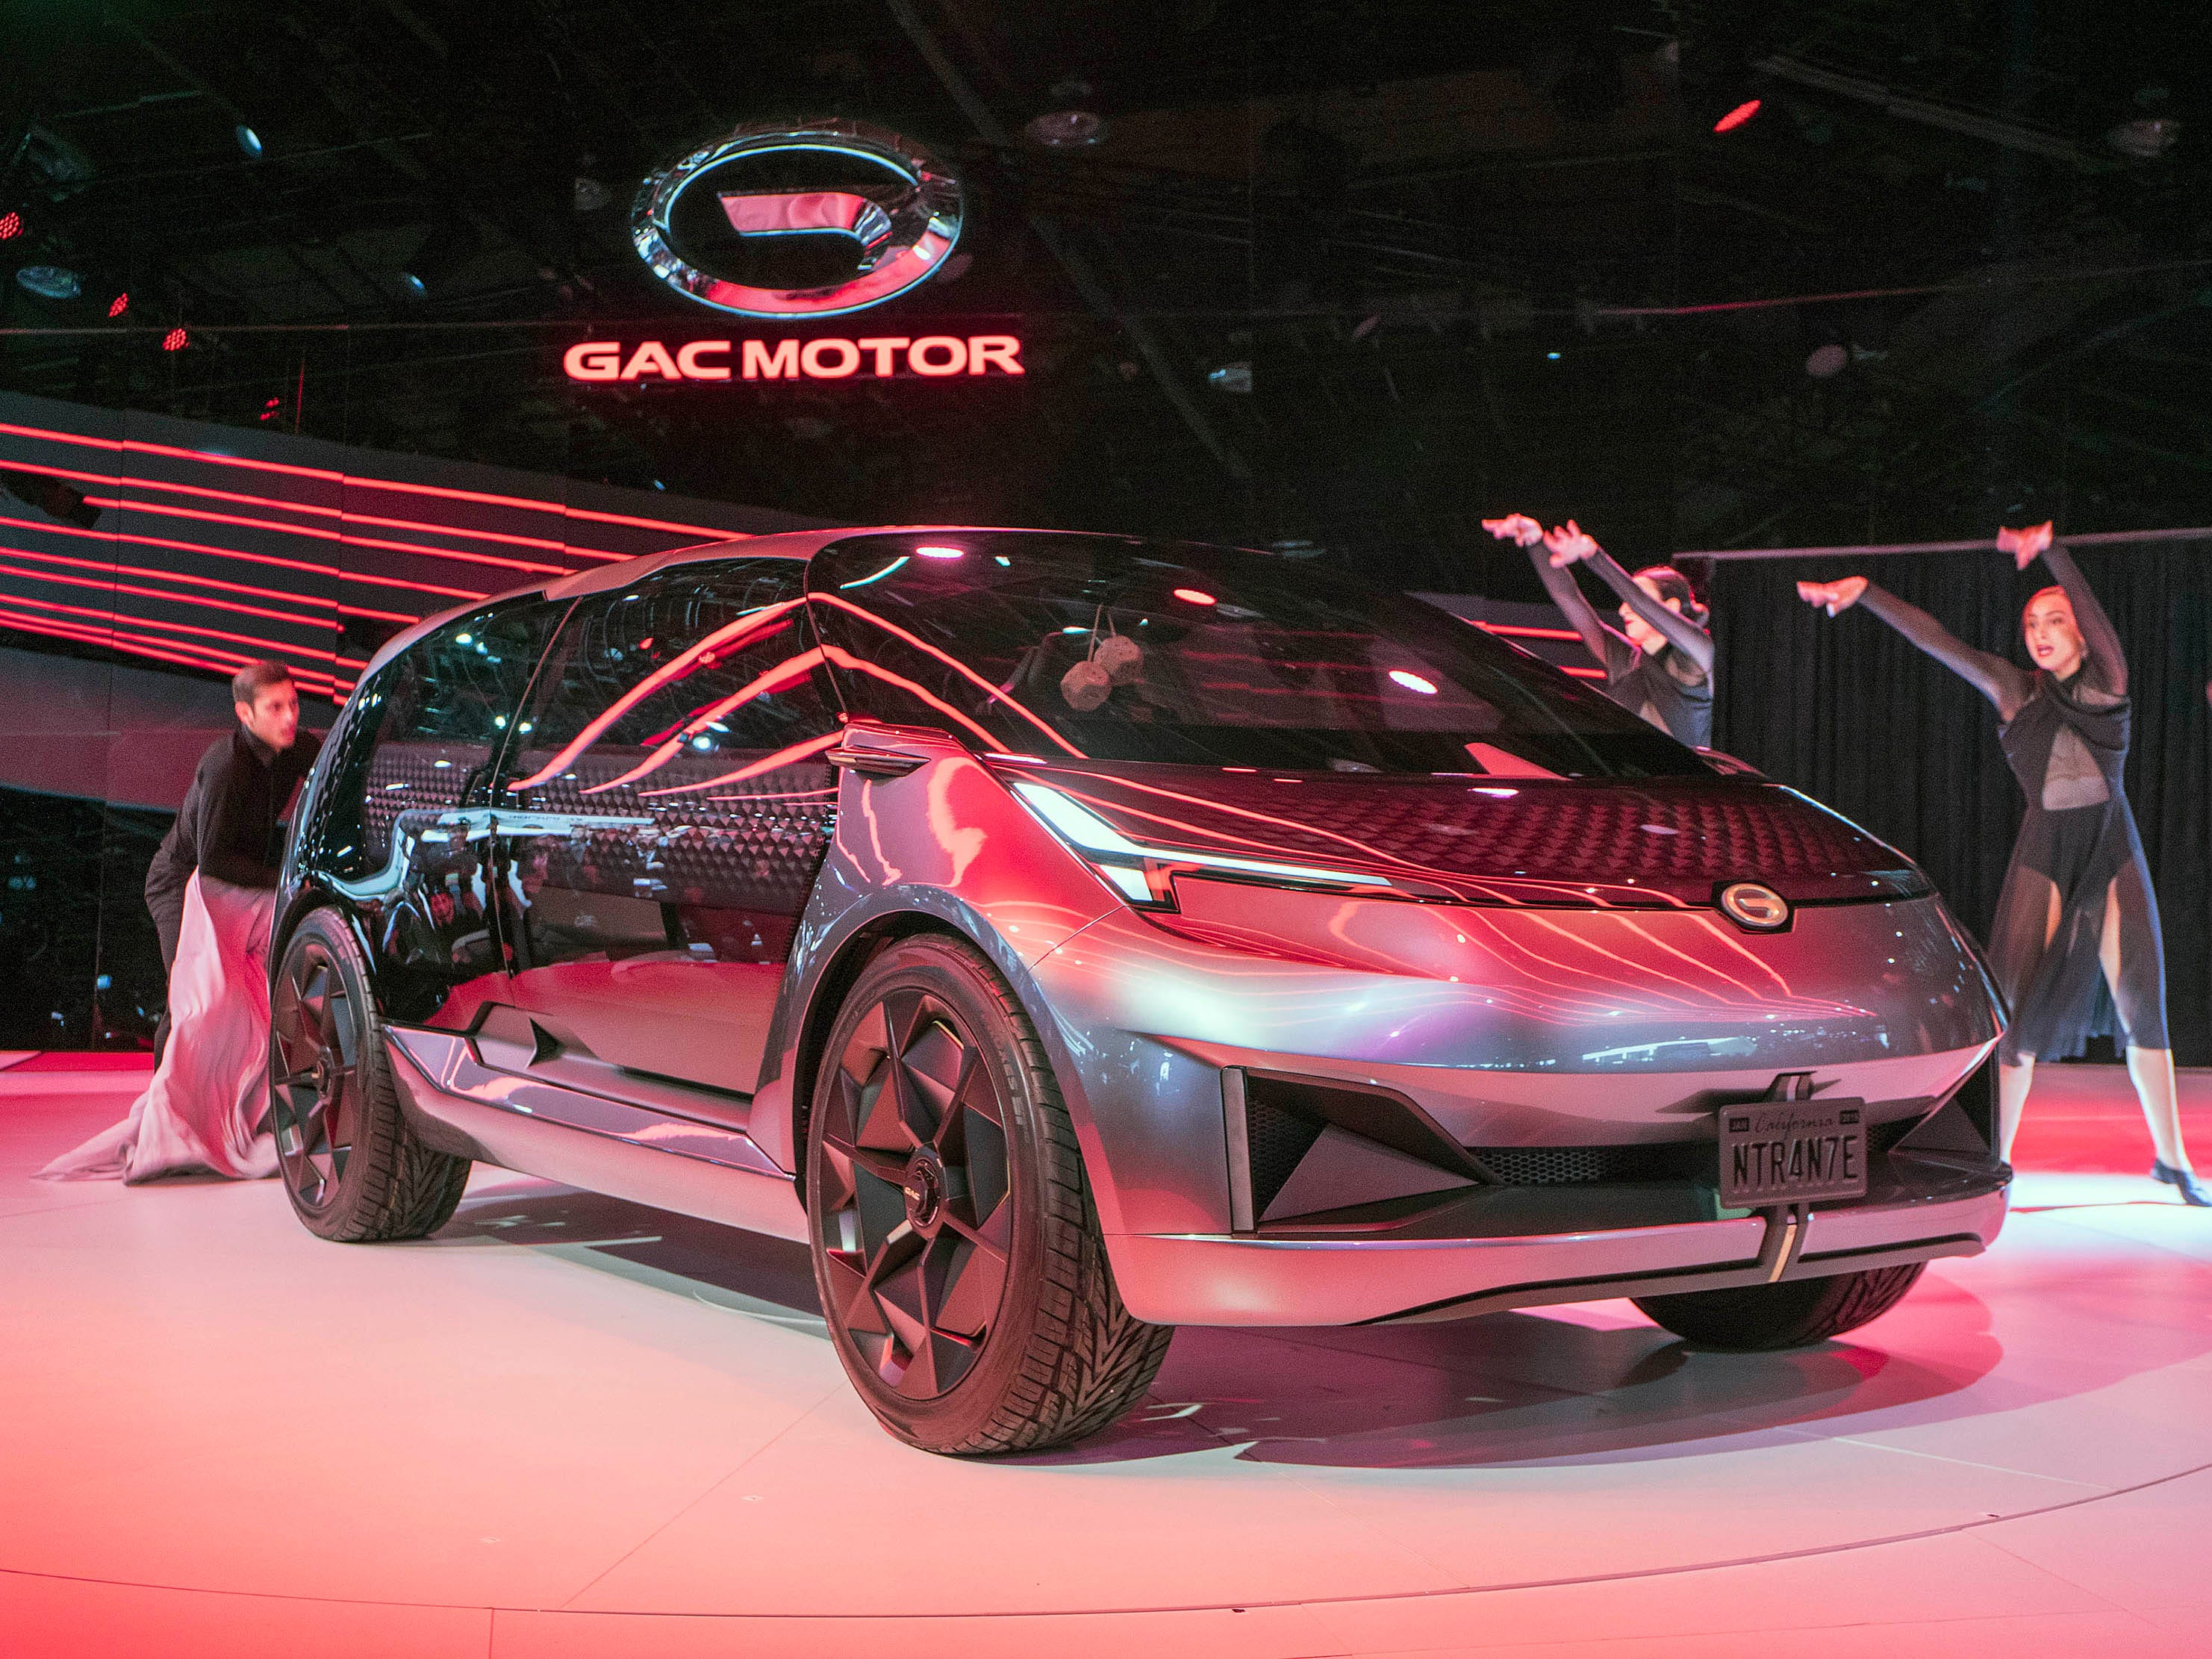 GAC Motor unveils the Entranze concept.